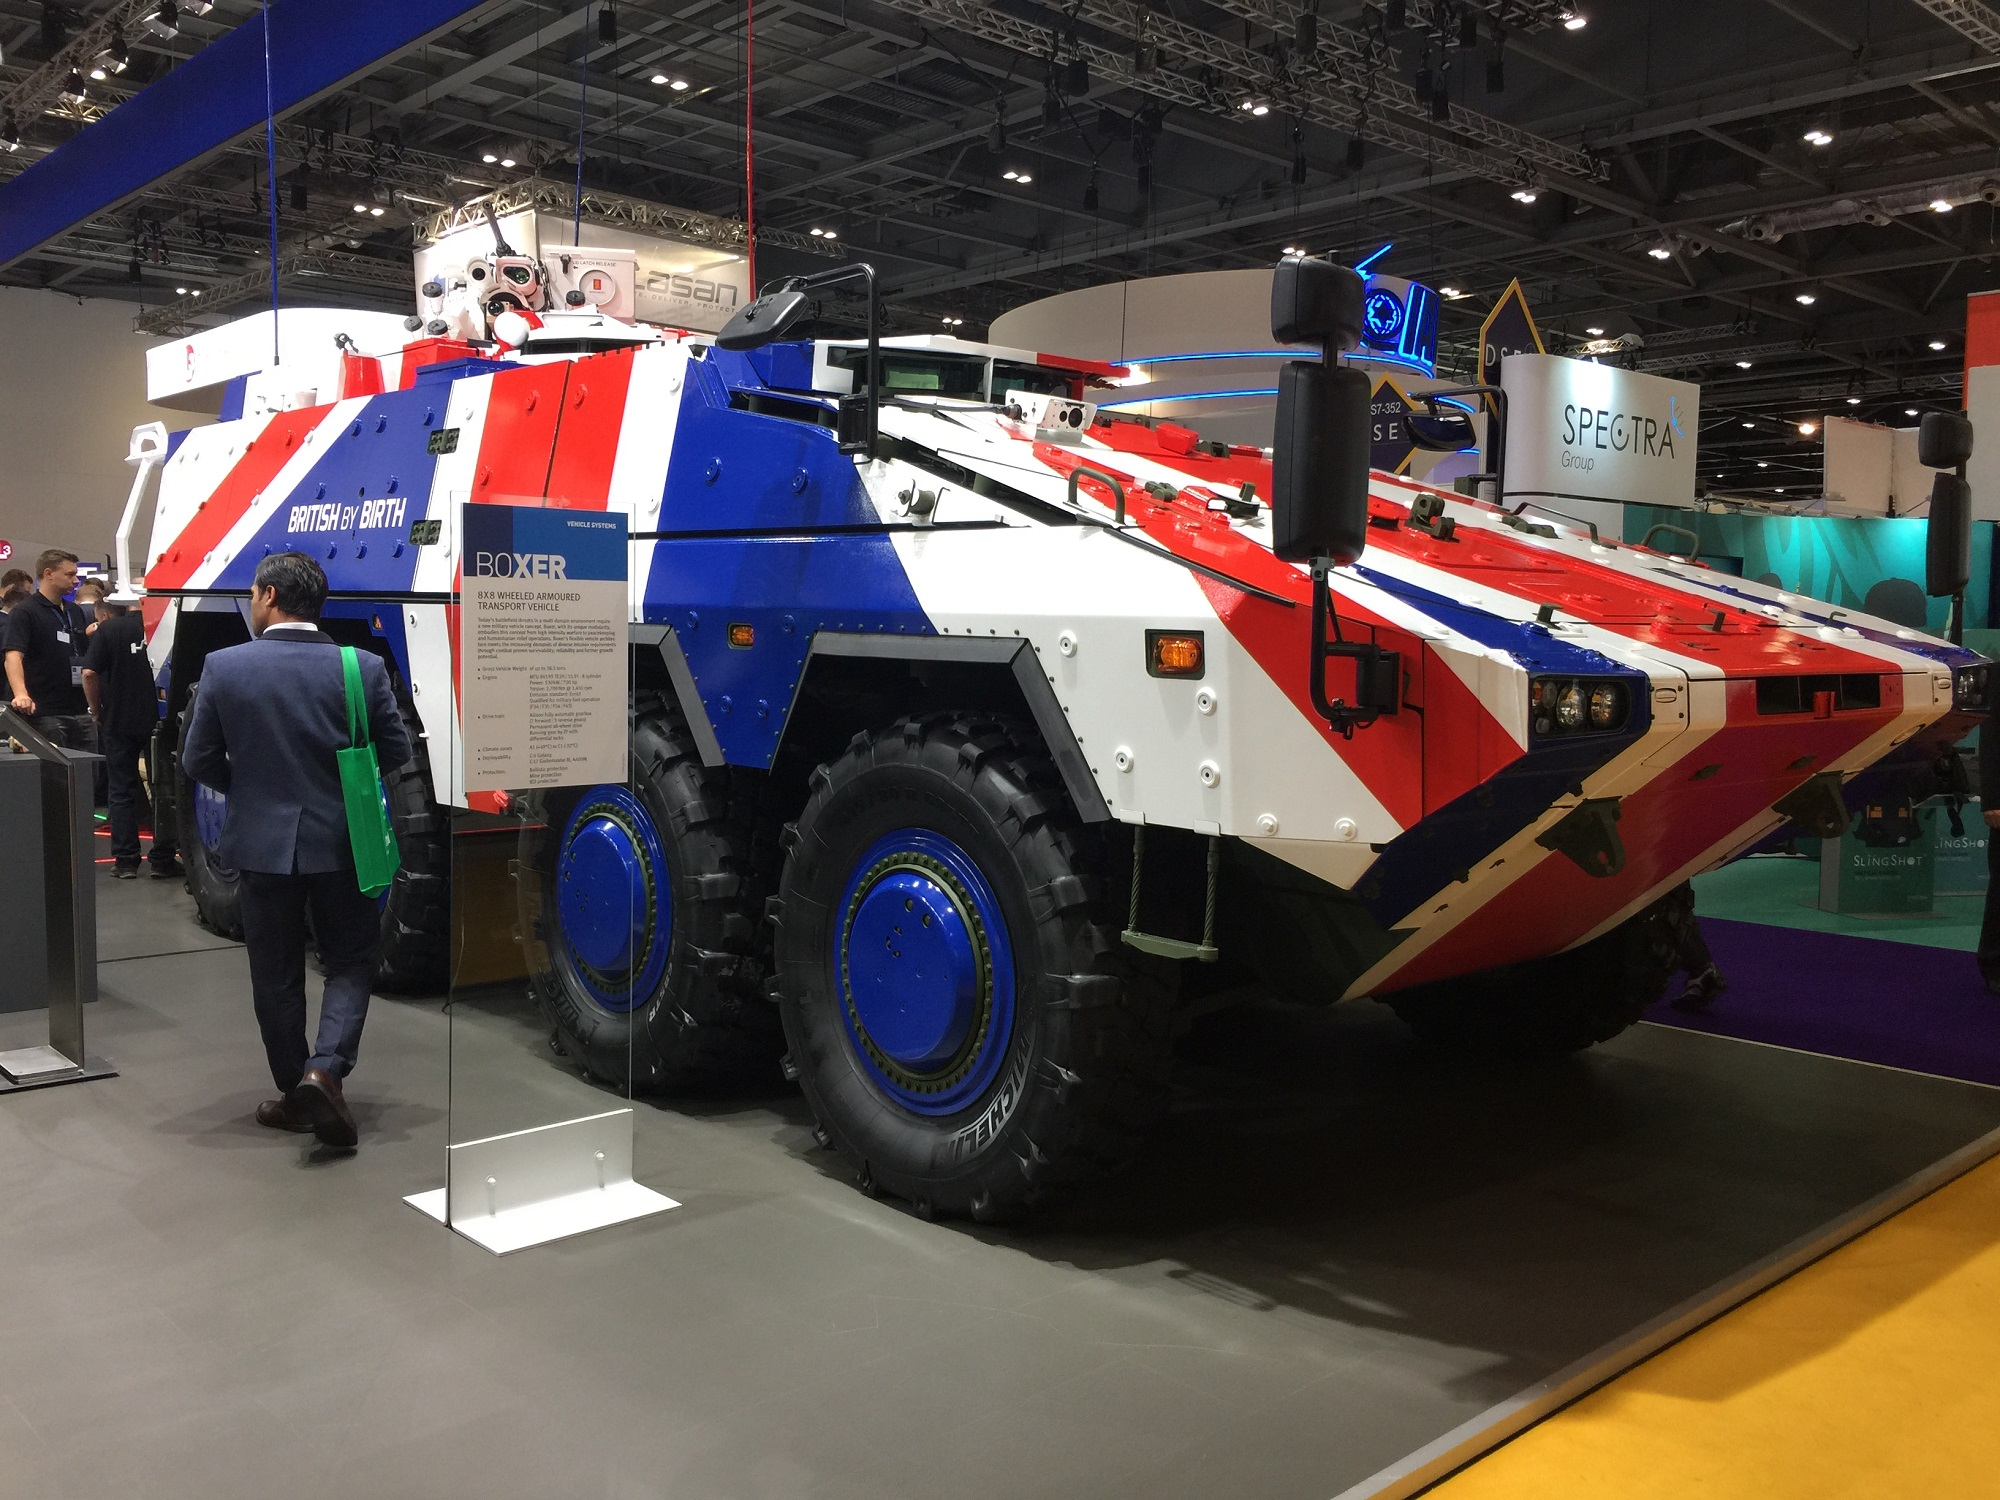 A Boxer vehicle on display at DSEI 2017 in London. (Staff Photo by Alan Lessig)